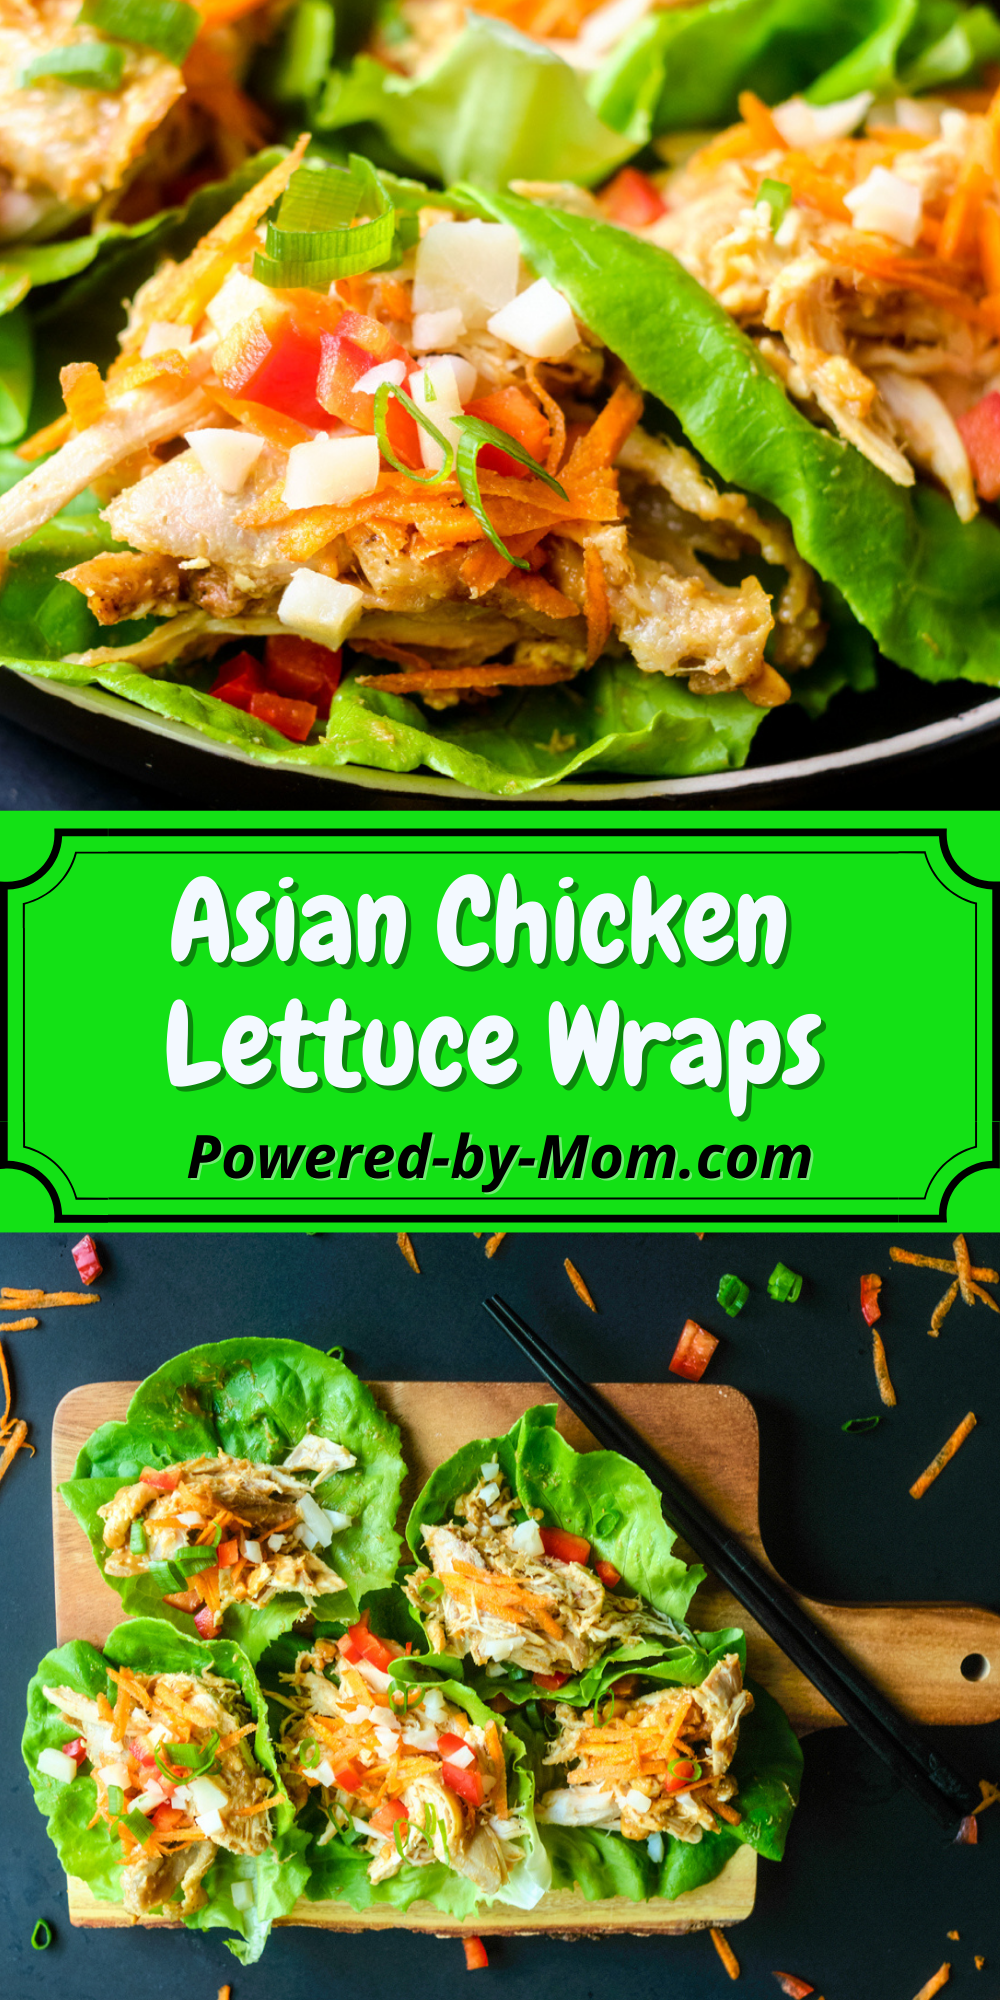 This recipe for Asian Chicken Lettuce Wraps is healthy, easy to make and full of flavour. They can be enjoyed as a dinner or even a snack.We love how tasty they are and that they are low in carbs too. Even better you can utilize leftover chicken (if it is plain or has complementary flavours) to make these yummy recipe for Asian Chicken Lettuce Wraps.